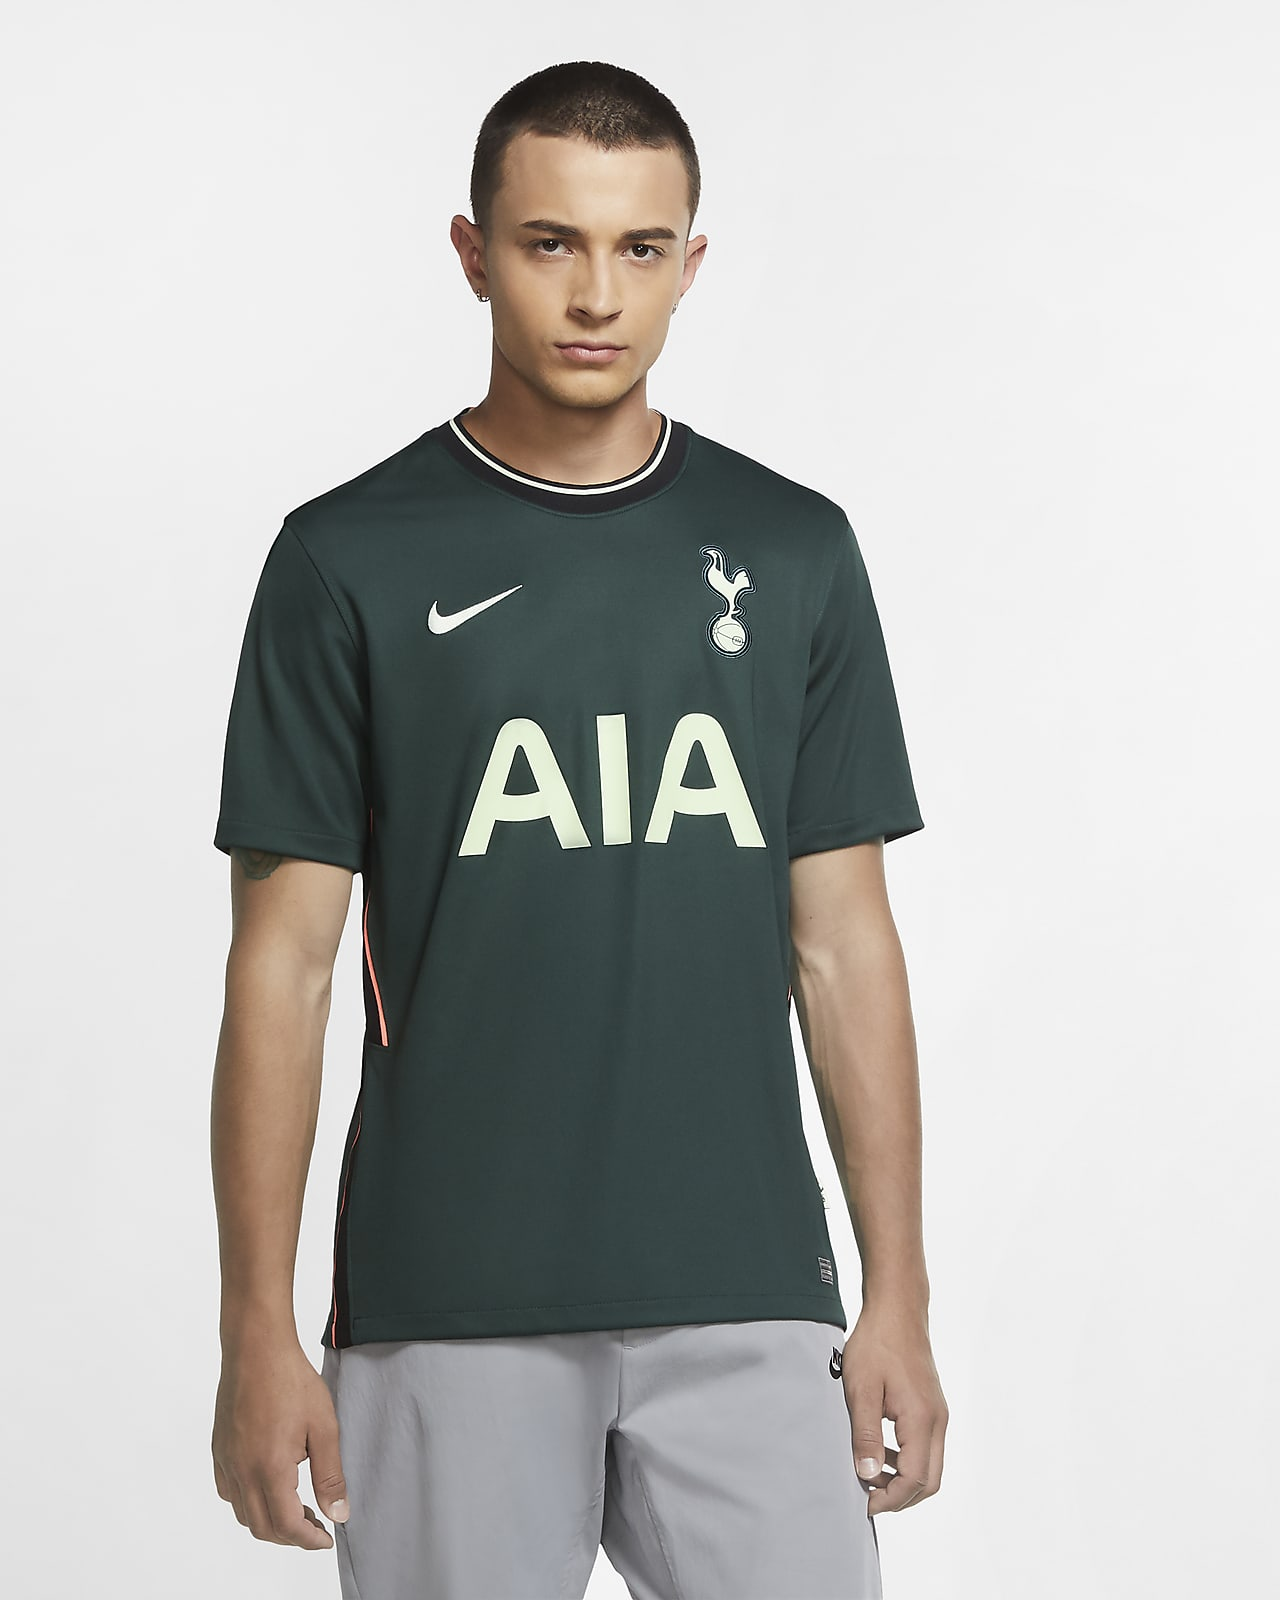 Tottenham Hotspur 2020/21 Stadium Away Men's Football Shirt